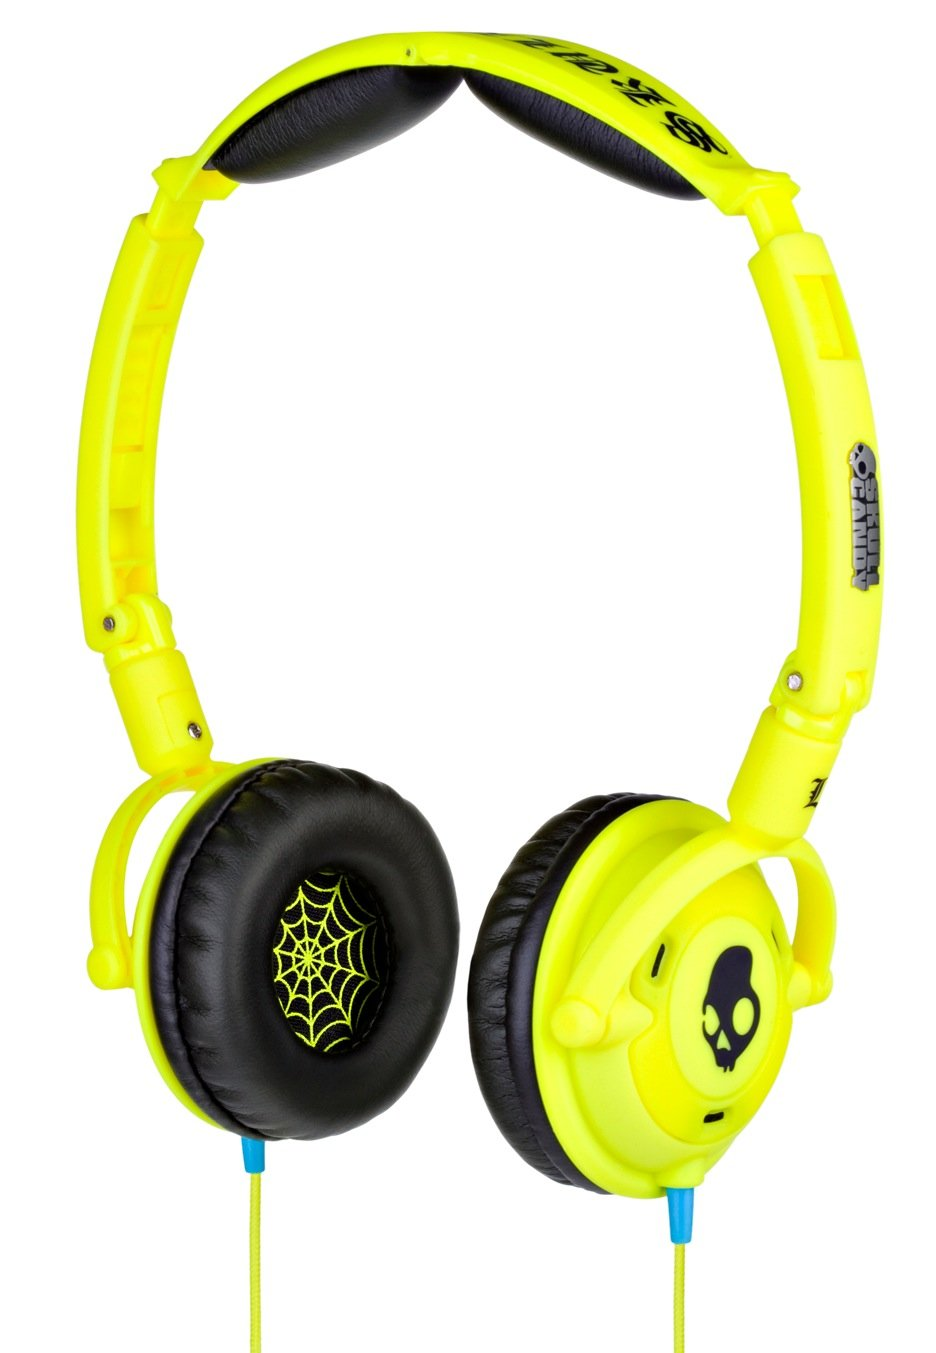 Earbuds yellow - skullcandy earbuds girls